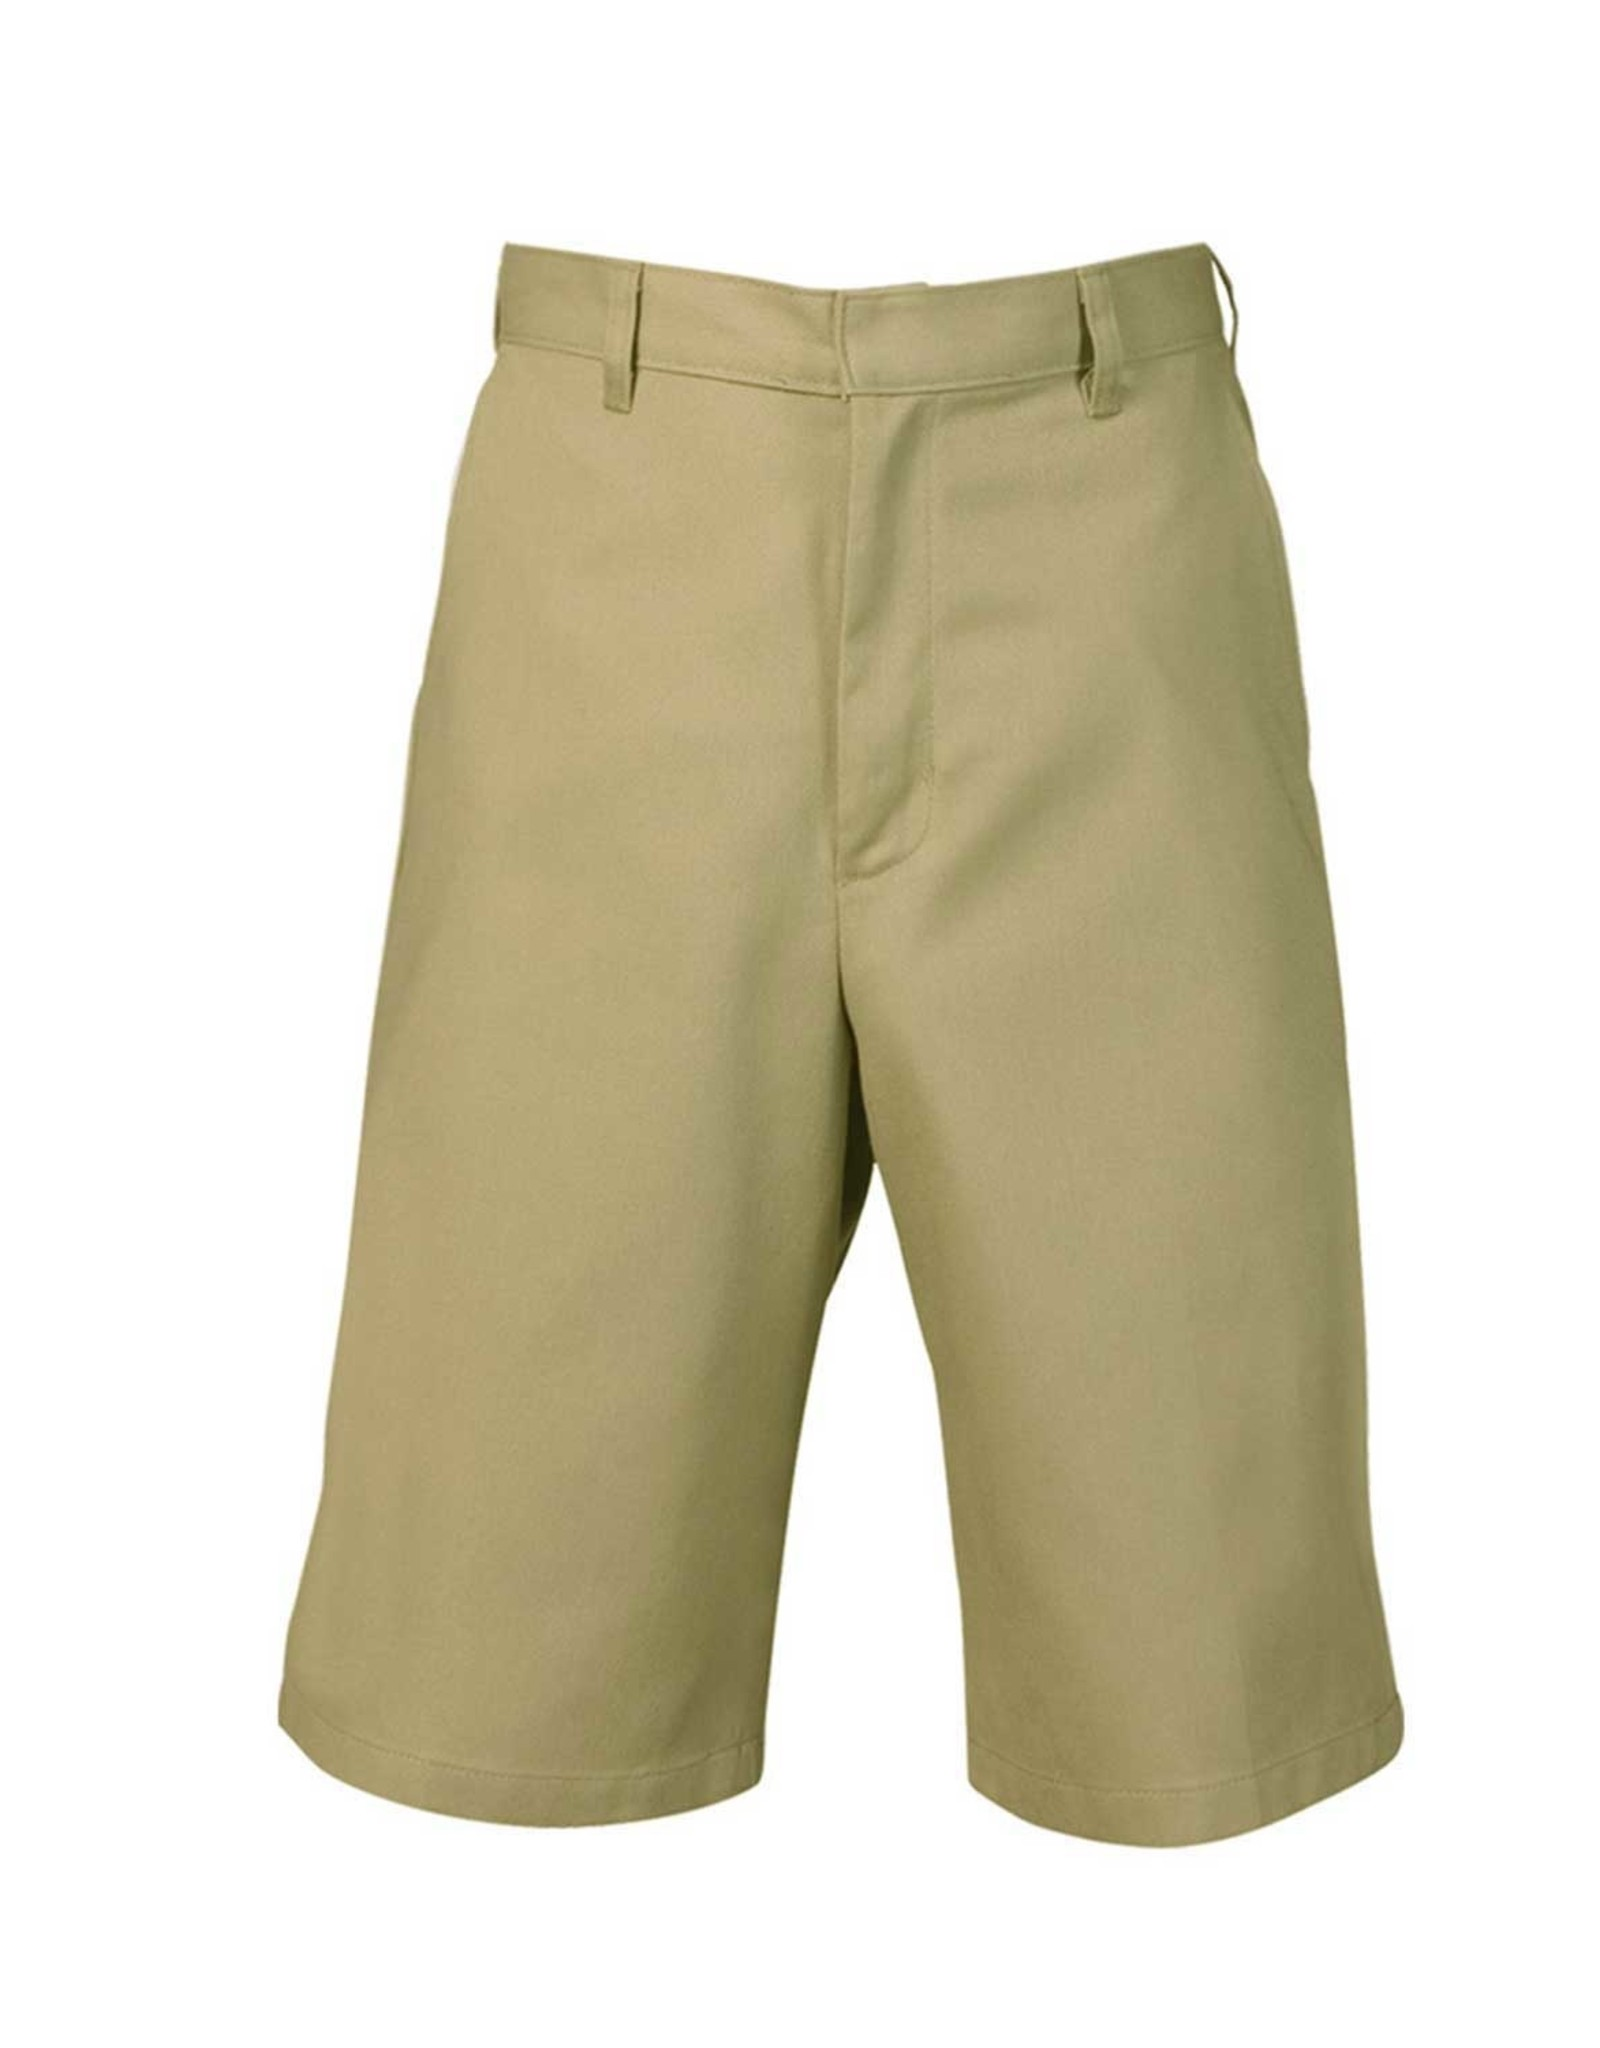 School Apparel Shorts - Mens - Long